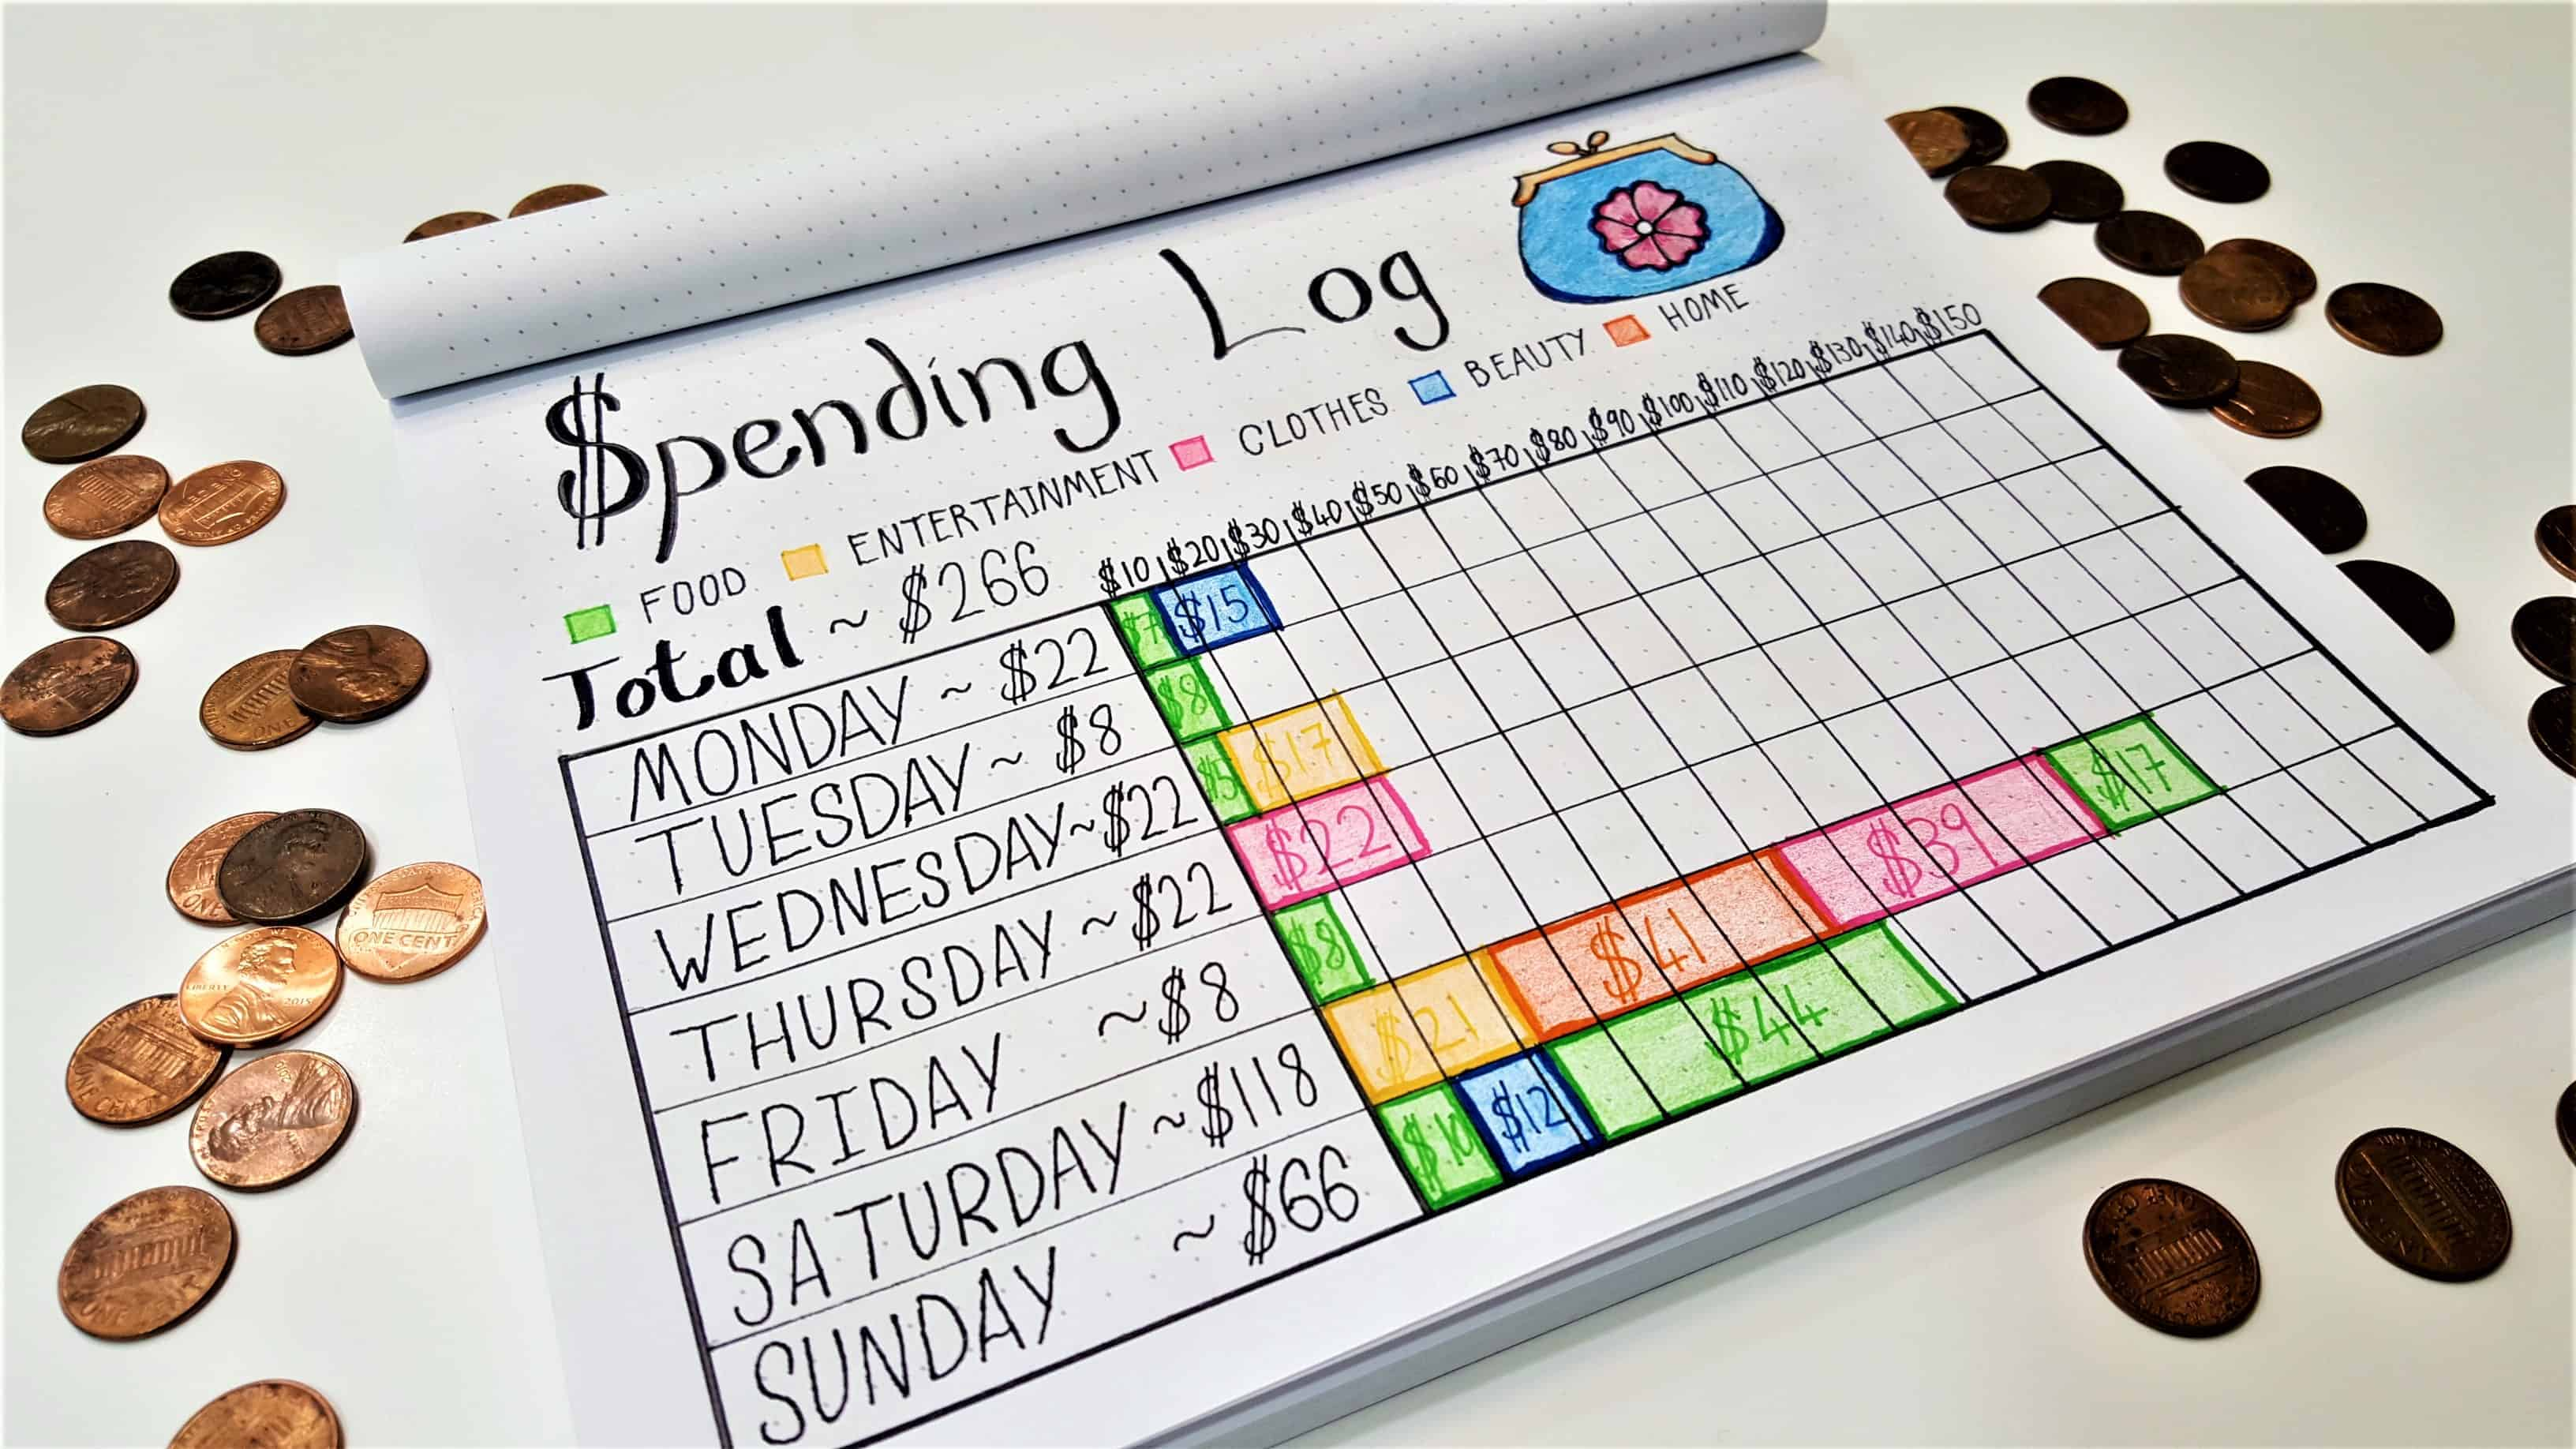 Habit Tracker Ideas - Weekly Spending Log Layout | How to use your bullet journal to keep track of your budget and savings. Financial planning using your bullet journal!